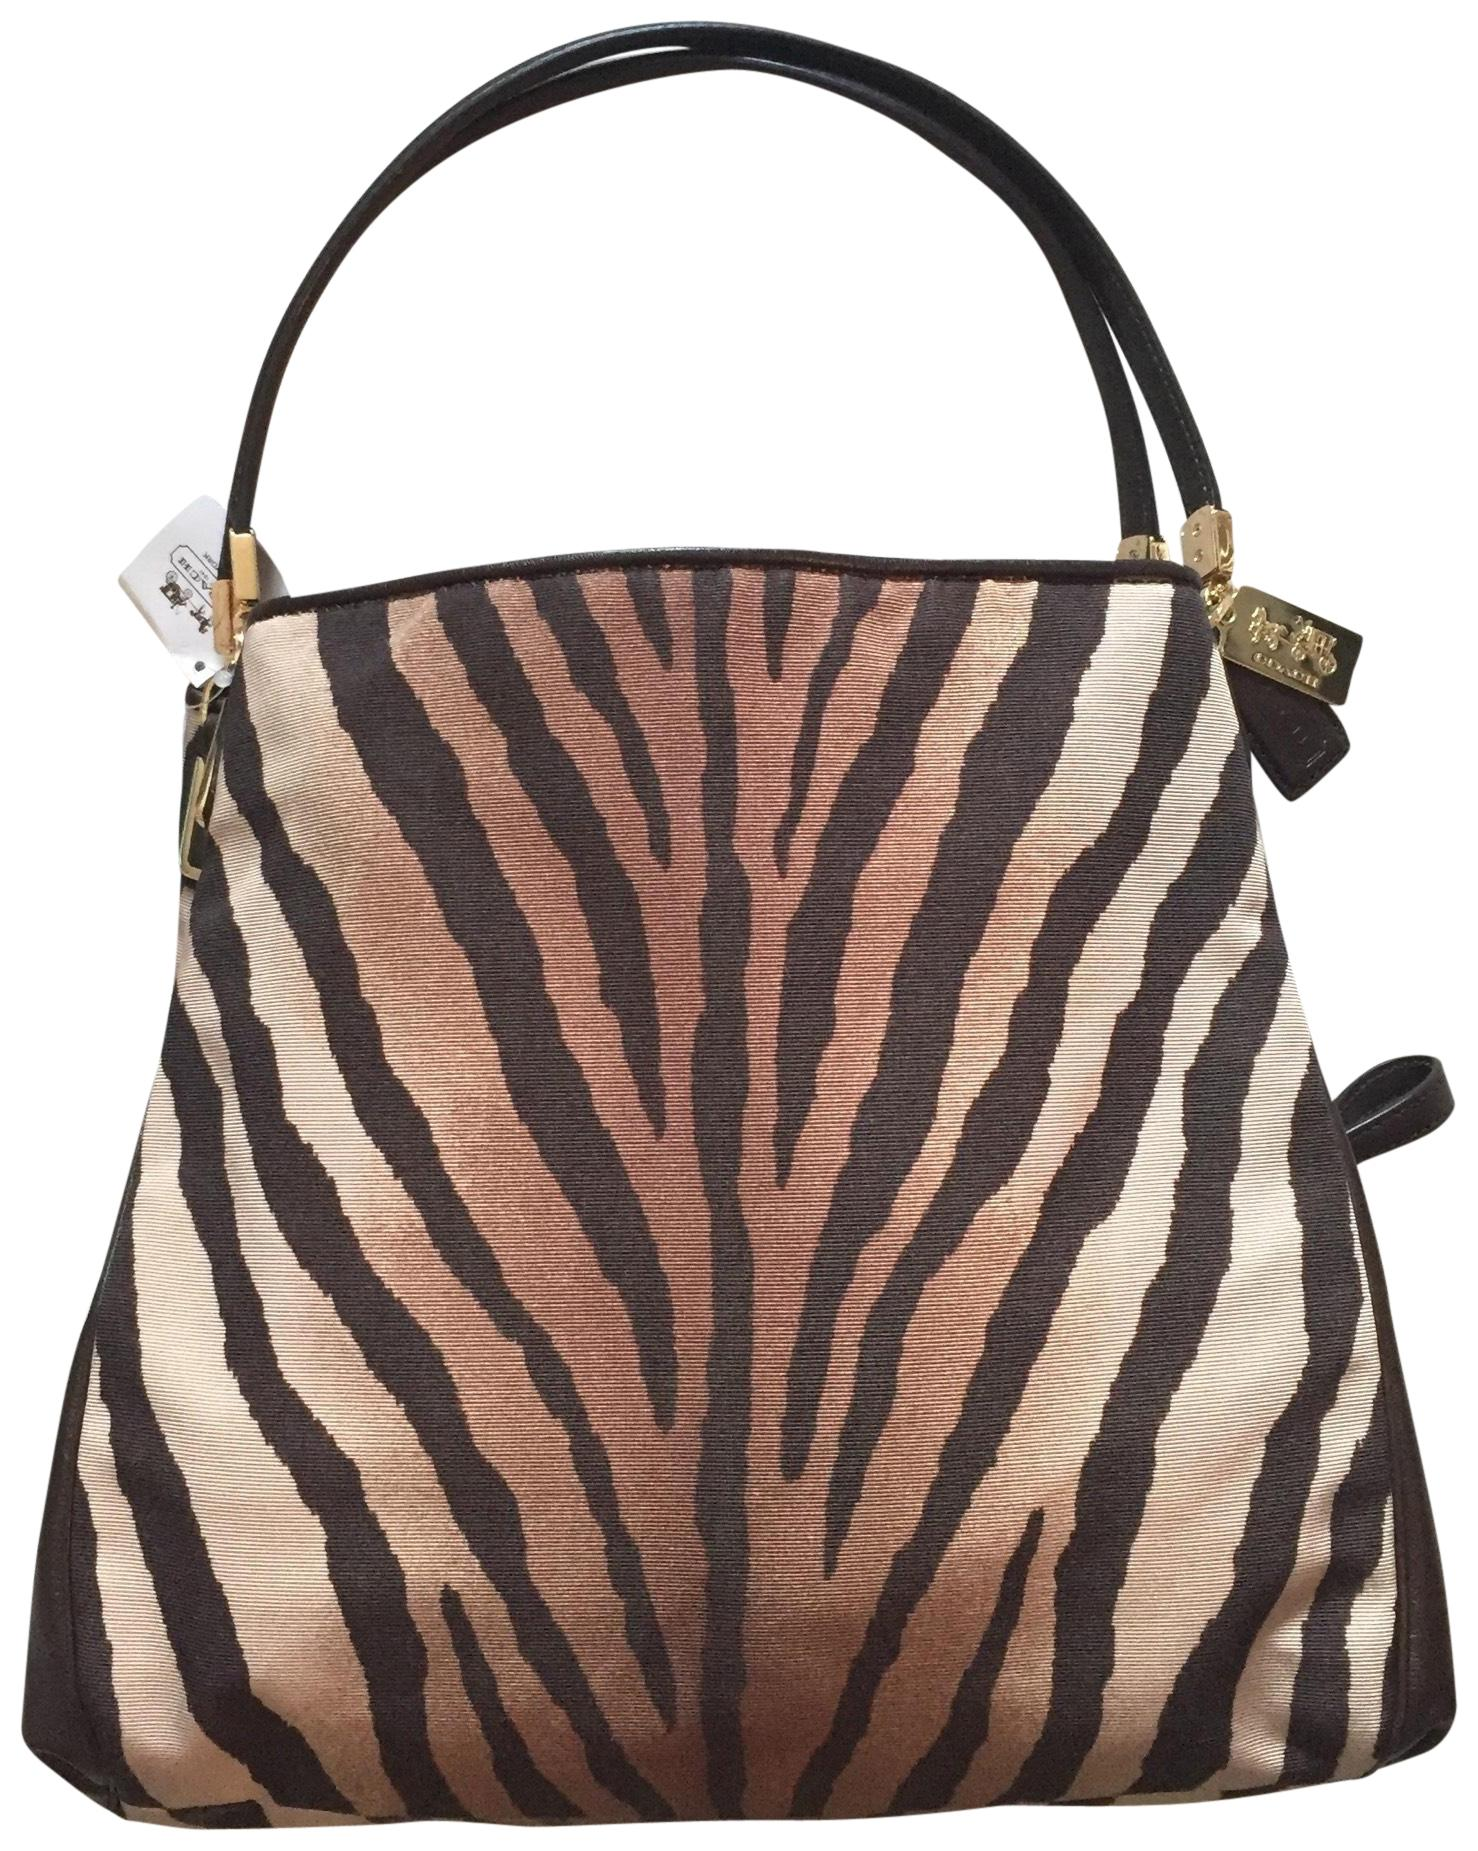 55a3b257d7f7 ... top quality coach phoebe animal shoulder bag 7a088 19290